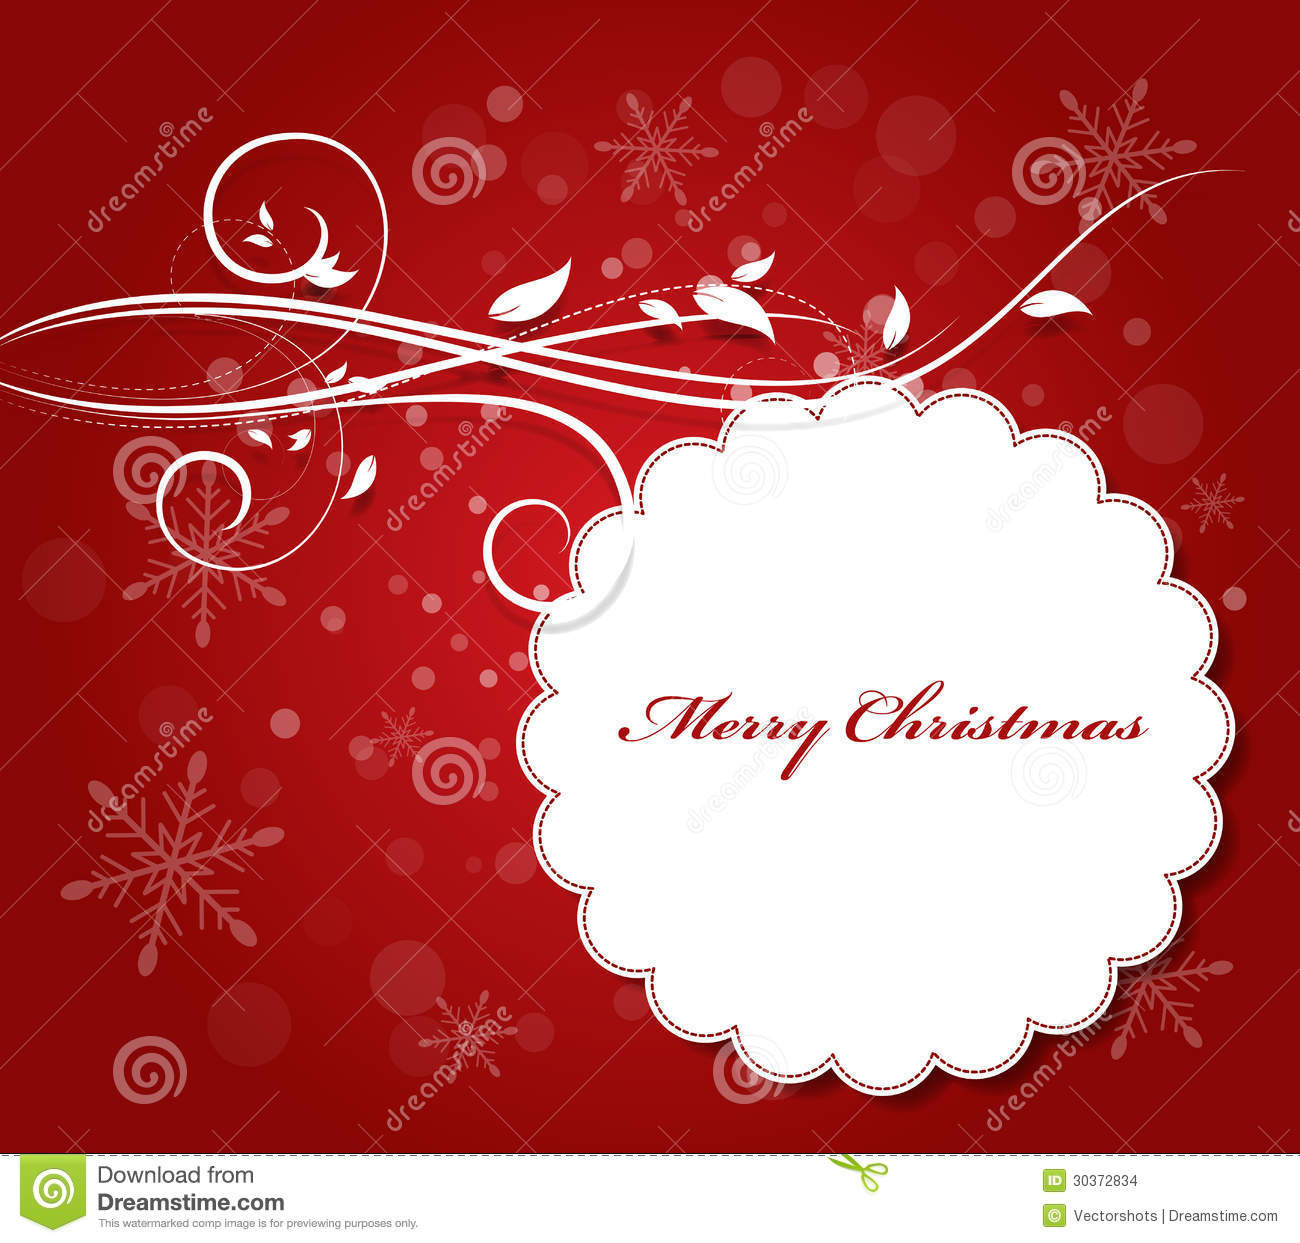 Christmas vector illustration background stock images for Beautiful creative art